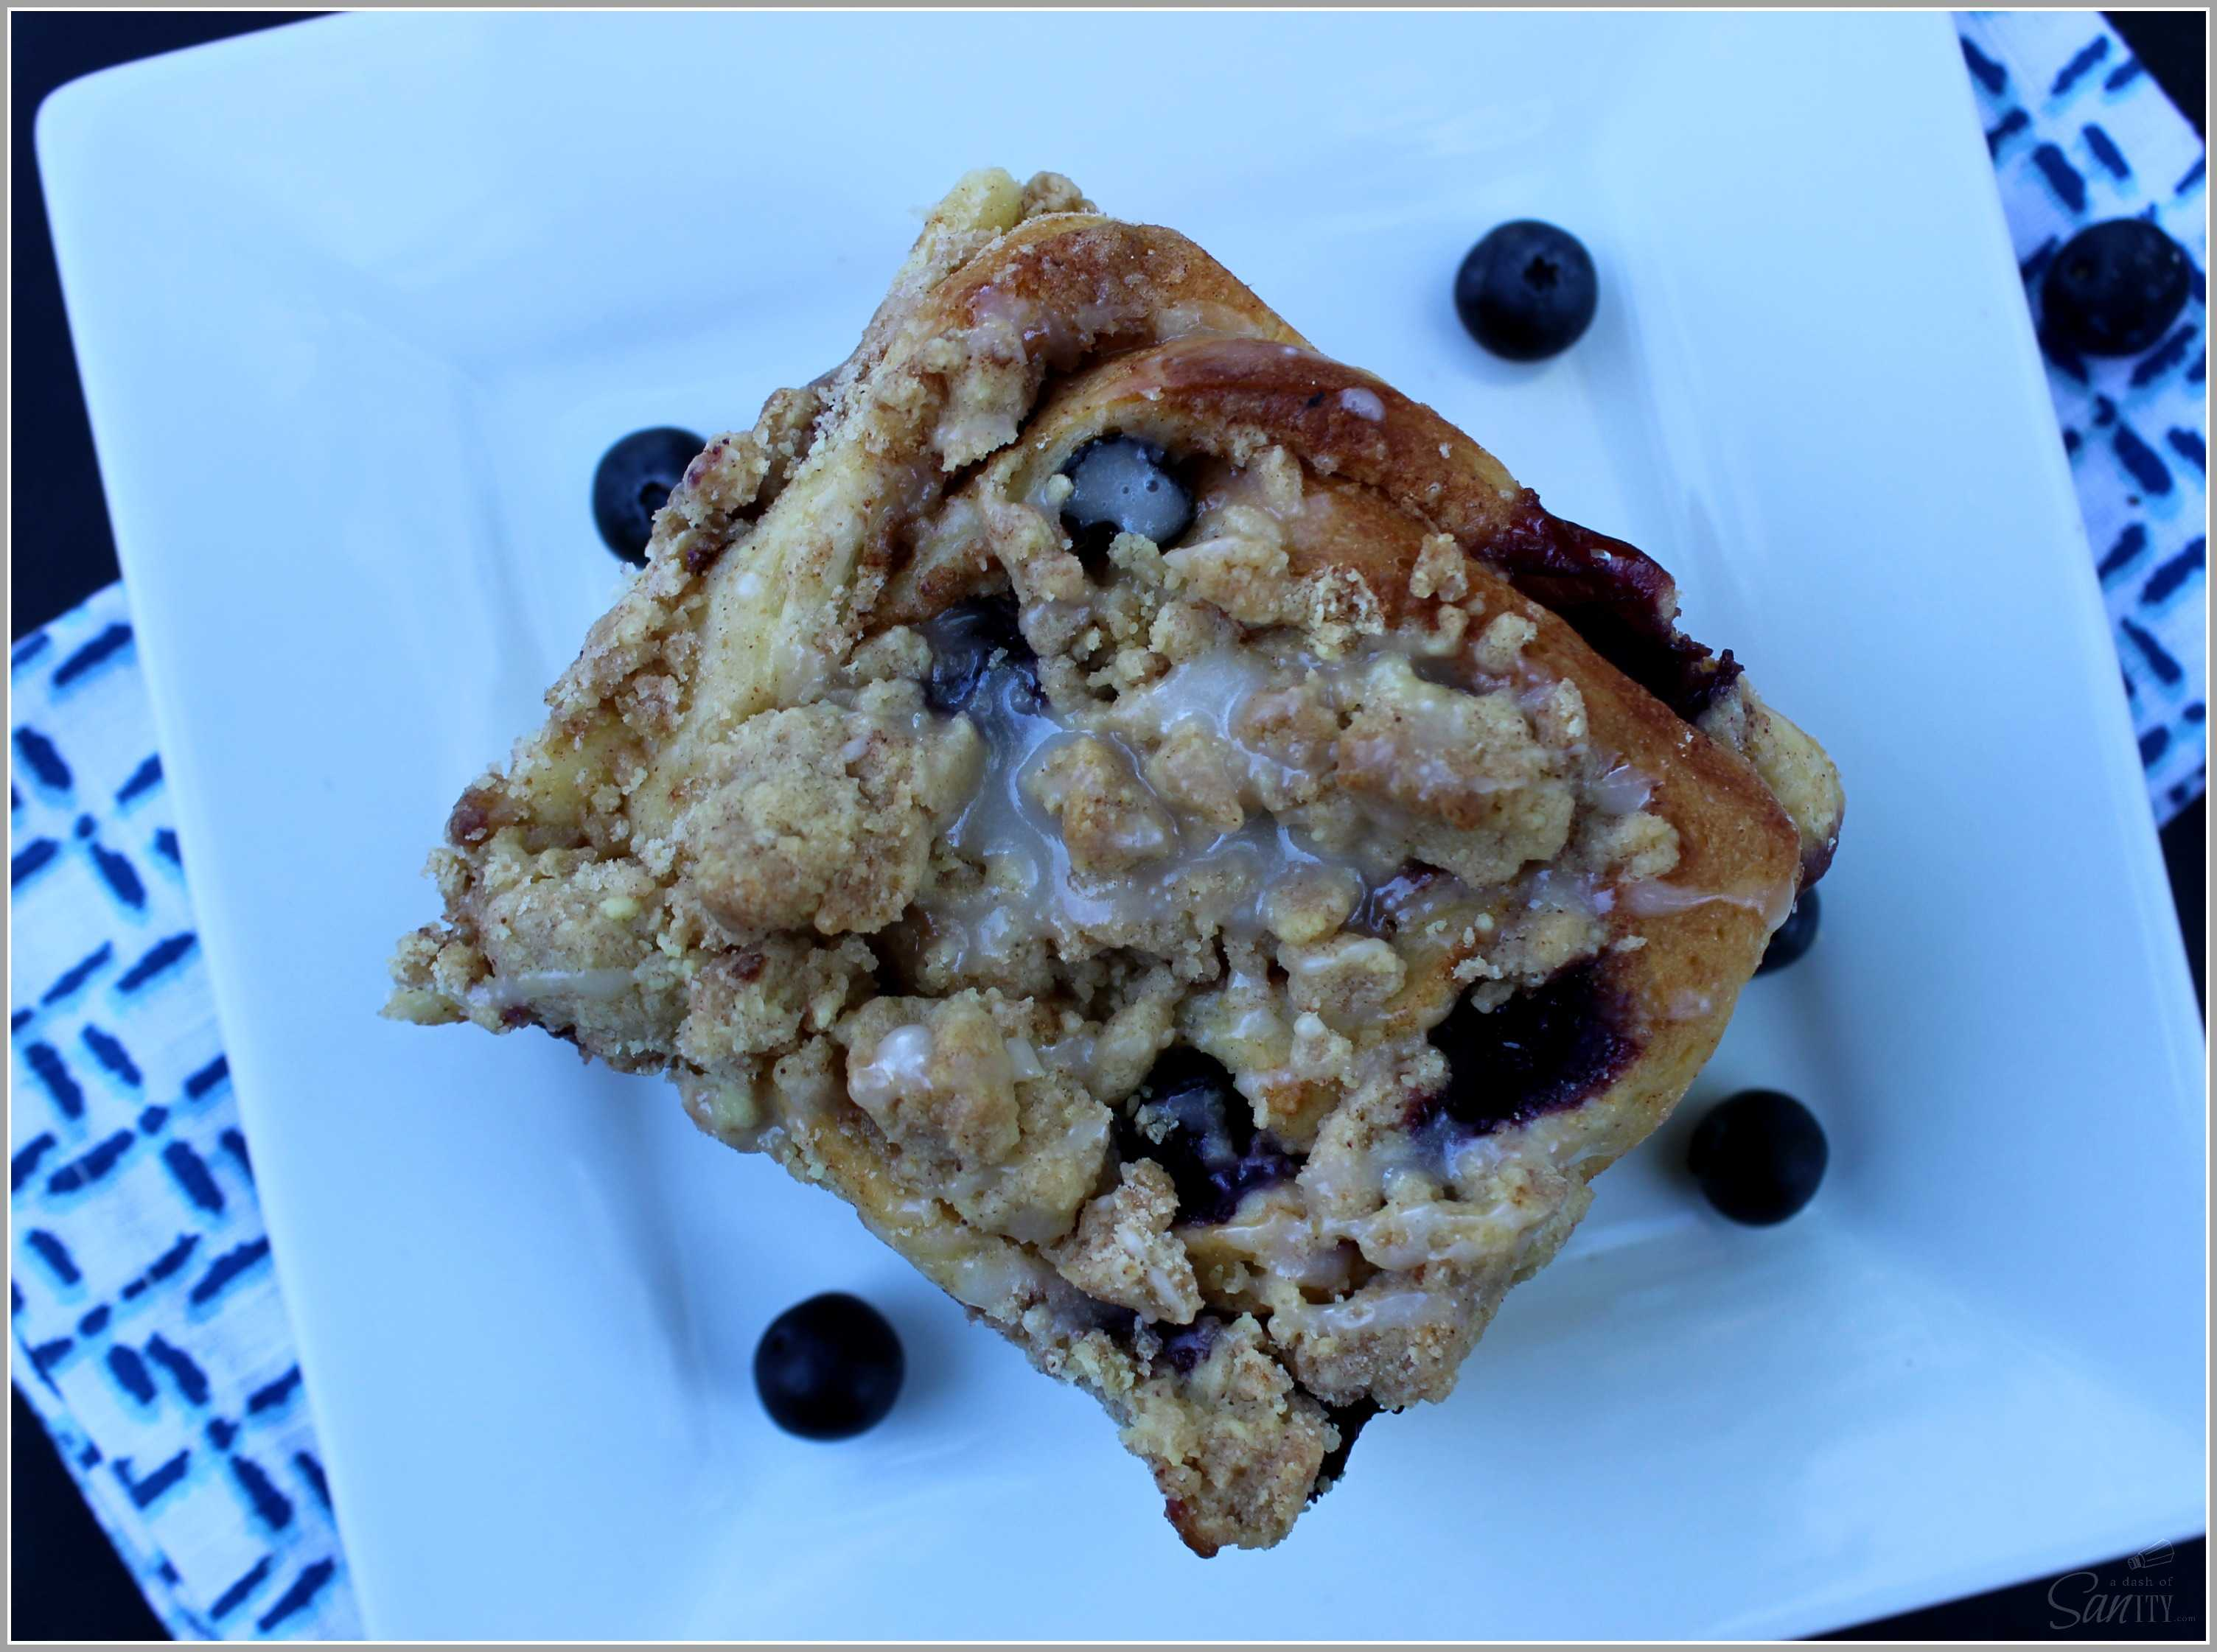 Blueberry Crumb Sweet Rolls with fresh blueberries & a creamy cinnamon center, then topped with a crumb topping, marrying two morning favorites.